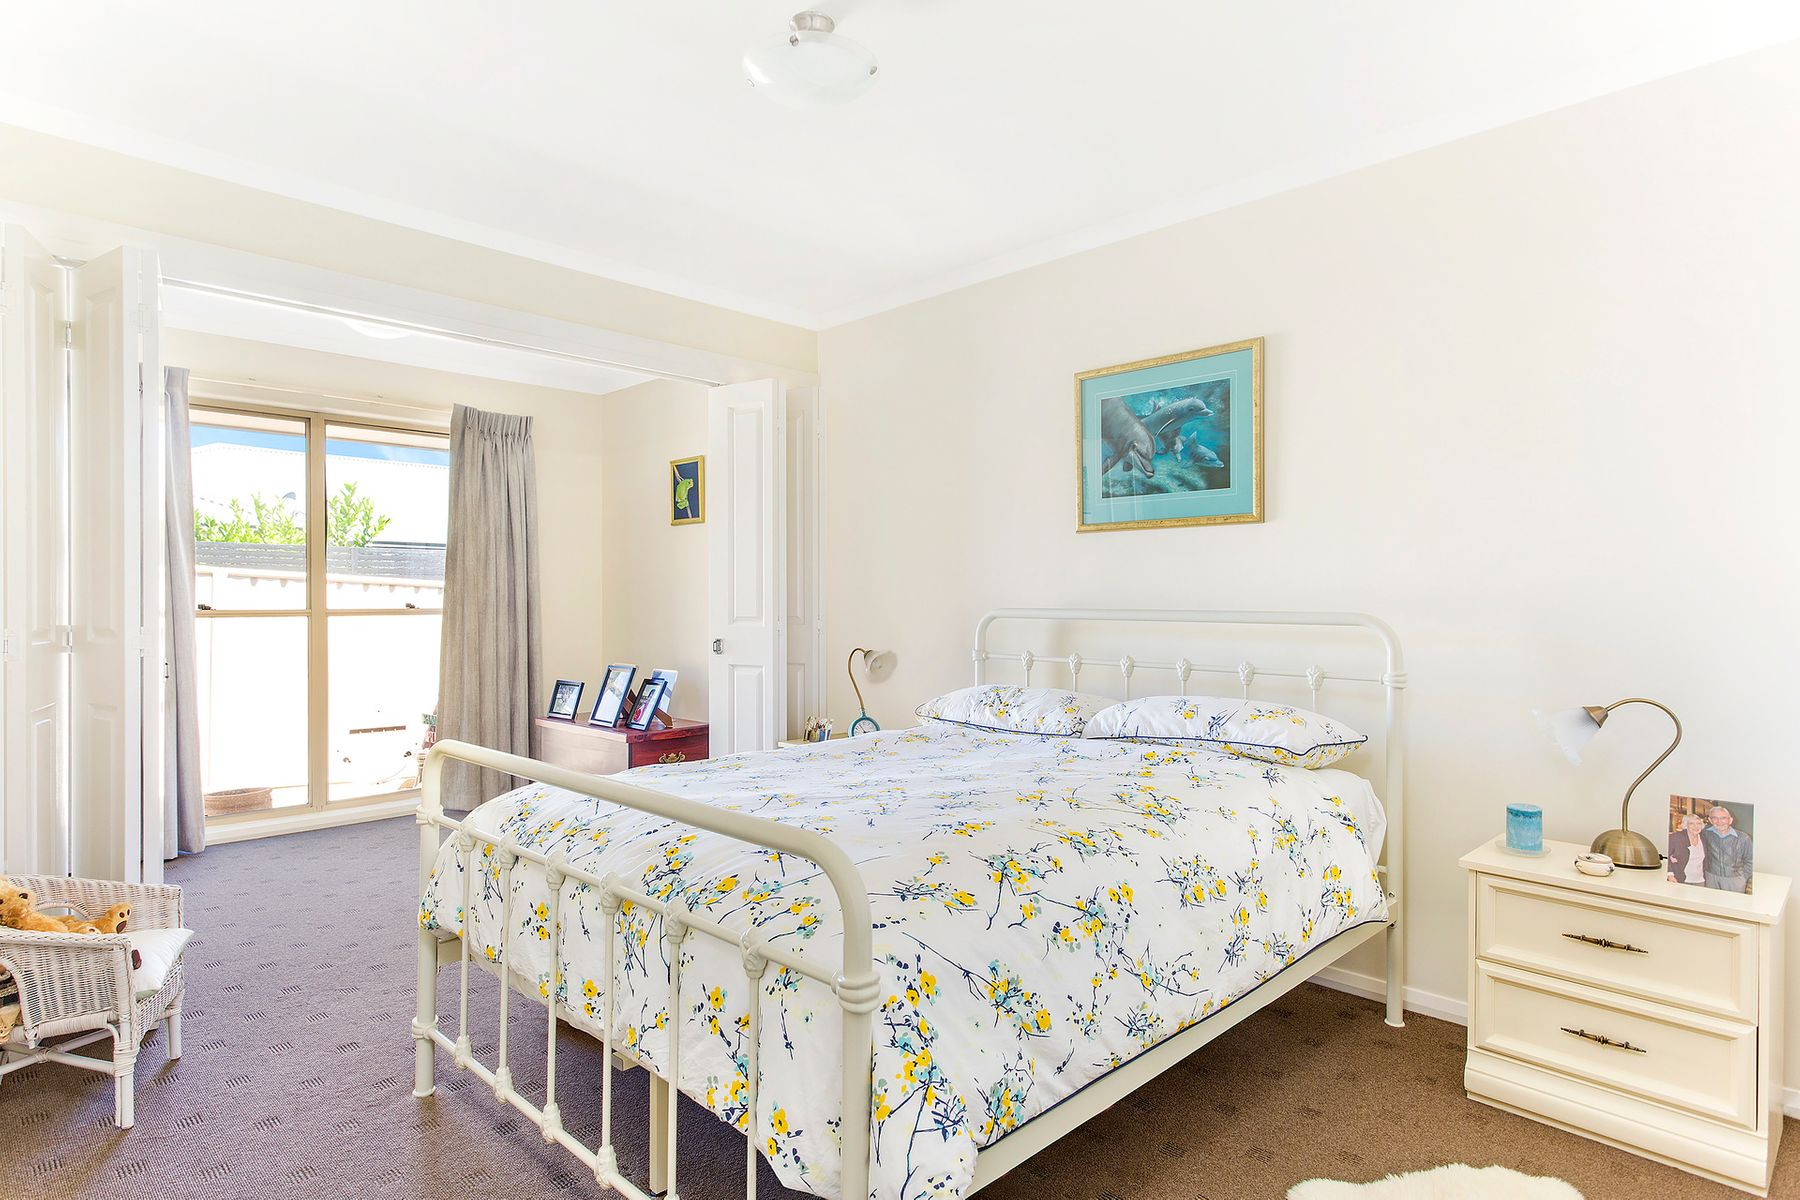 2/50 Mistletoe Street, Golden Square, VIC 3555